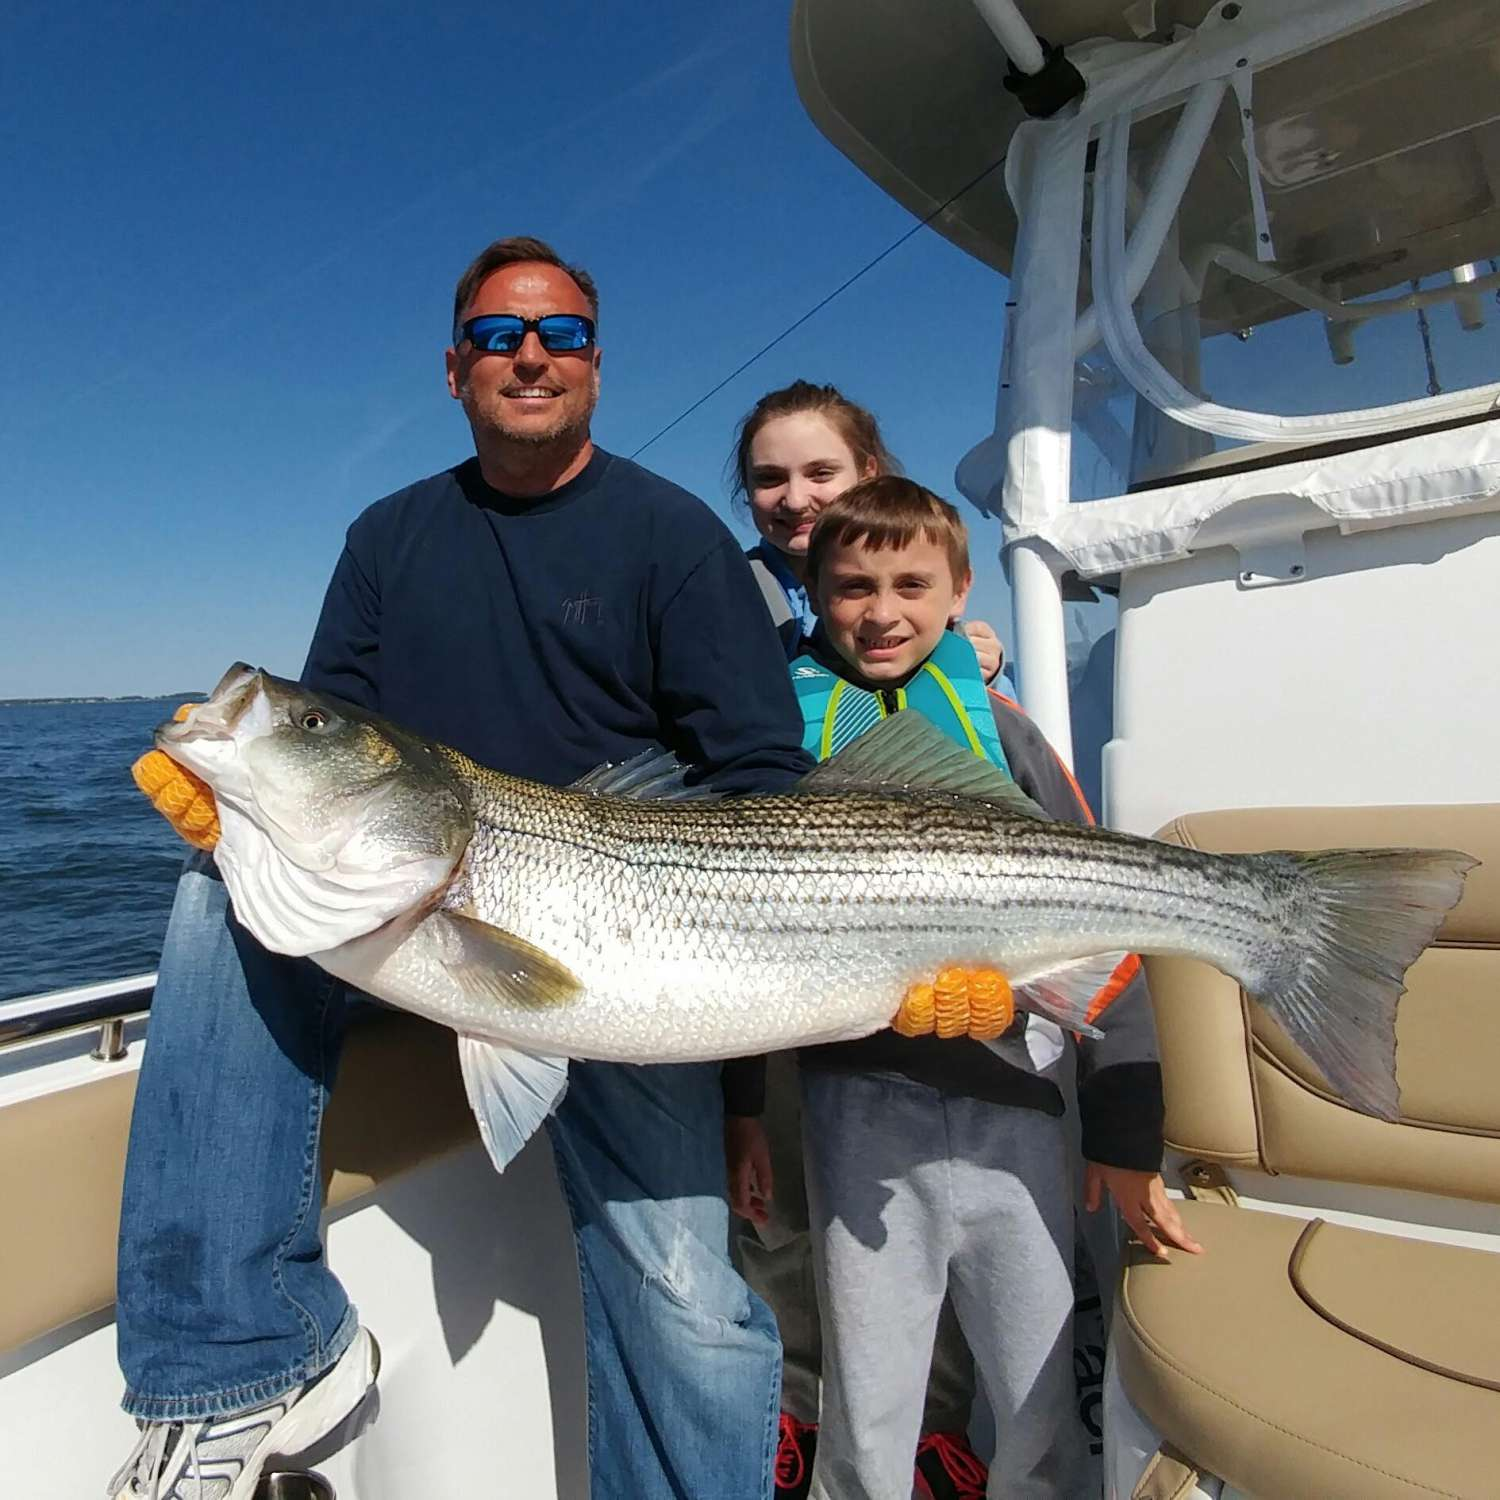 Title: Monster Striper - On board their Sportsman Open 252 Center Console - Location: Grasonville, Maryland. Participating in the Photo Contest #SportsmanMay2016